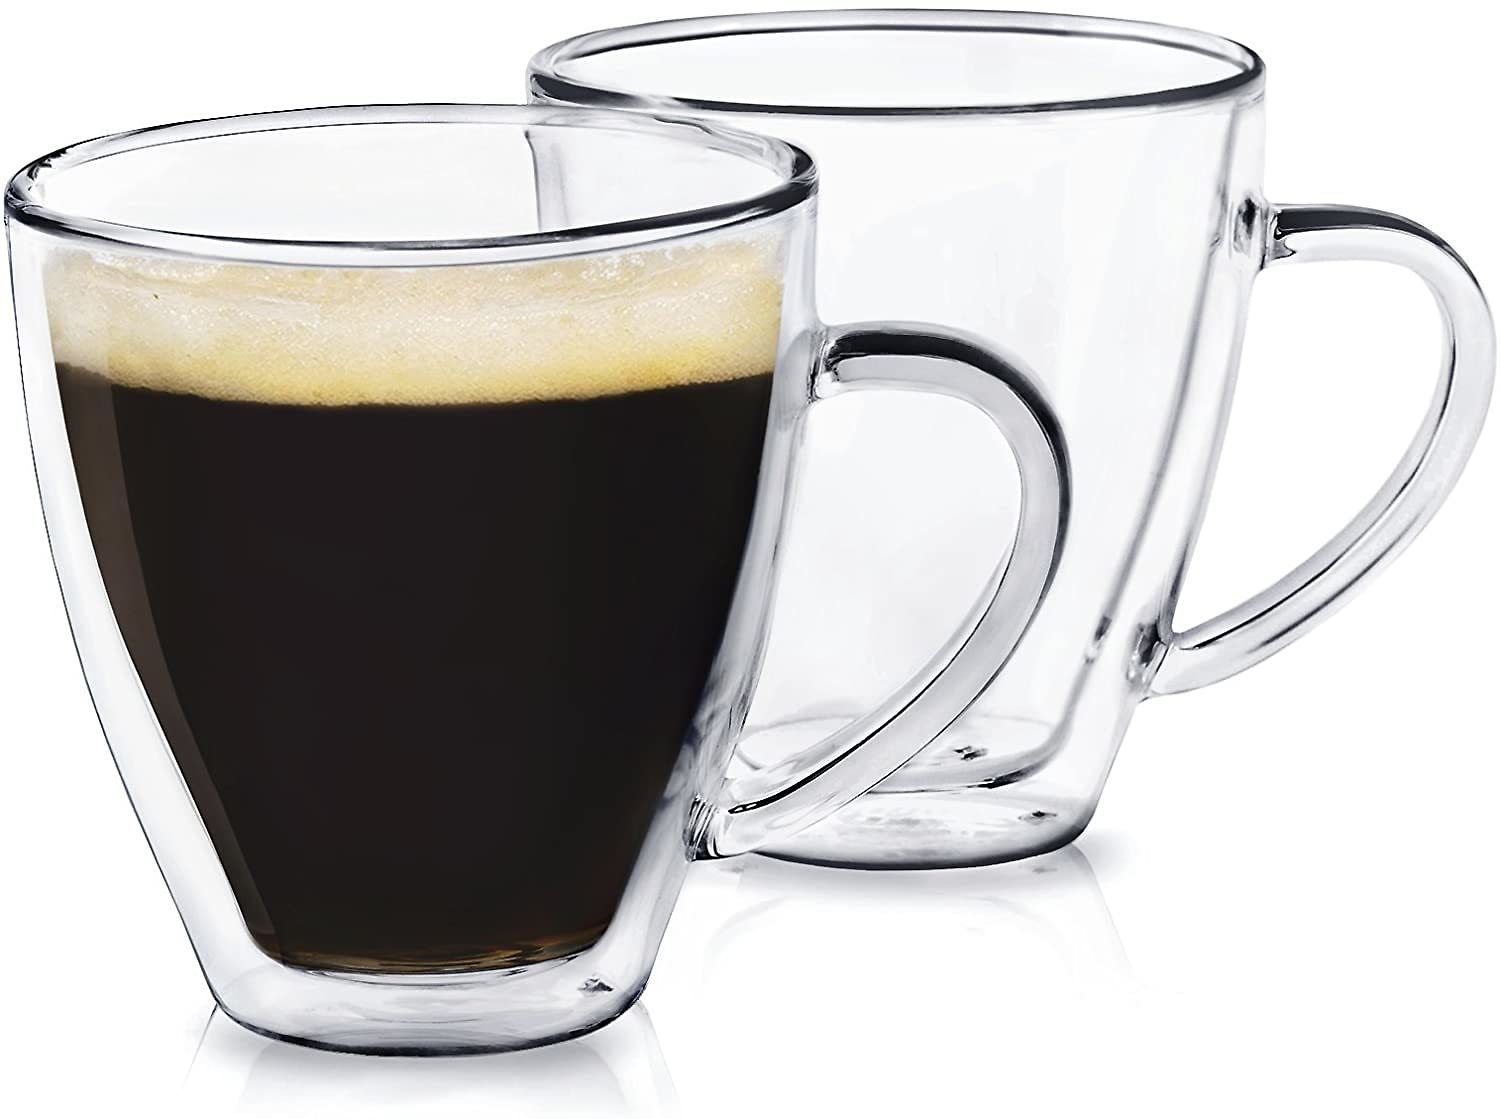 Dragon Glassware Espresso Cups, Insulating Double Walled Glass, 6-Ounce, Set of 4